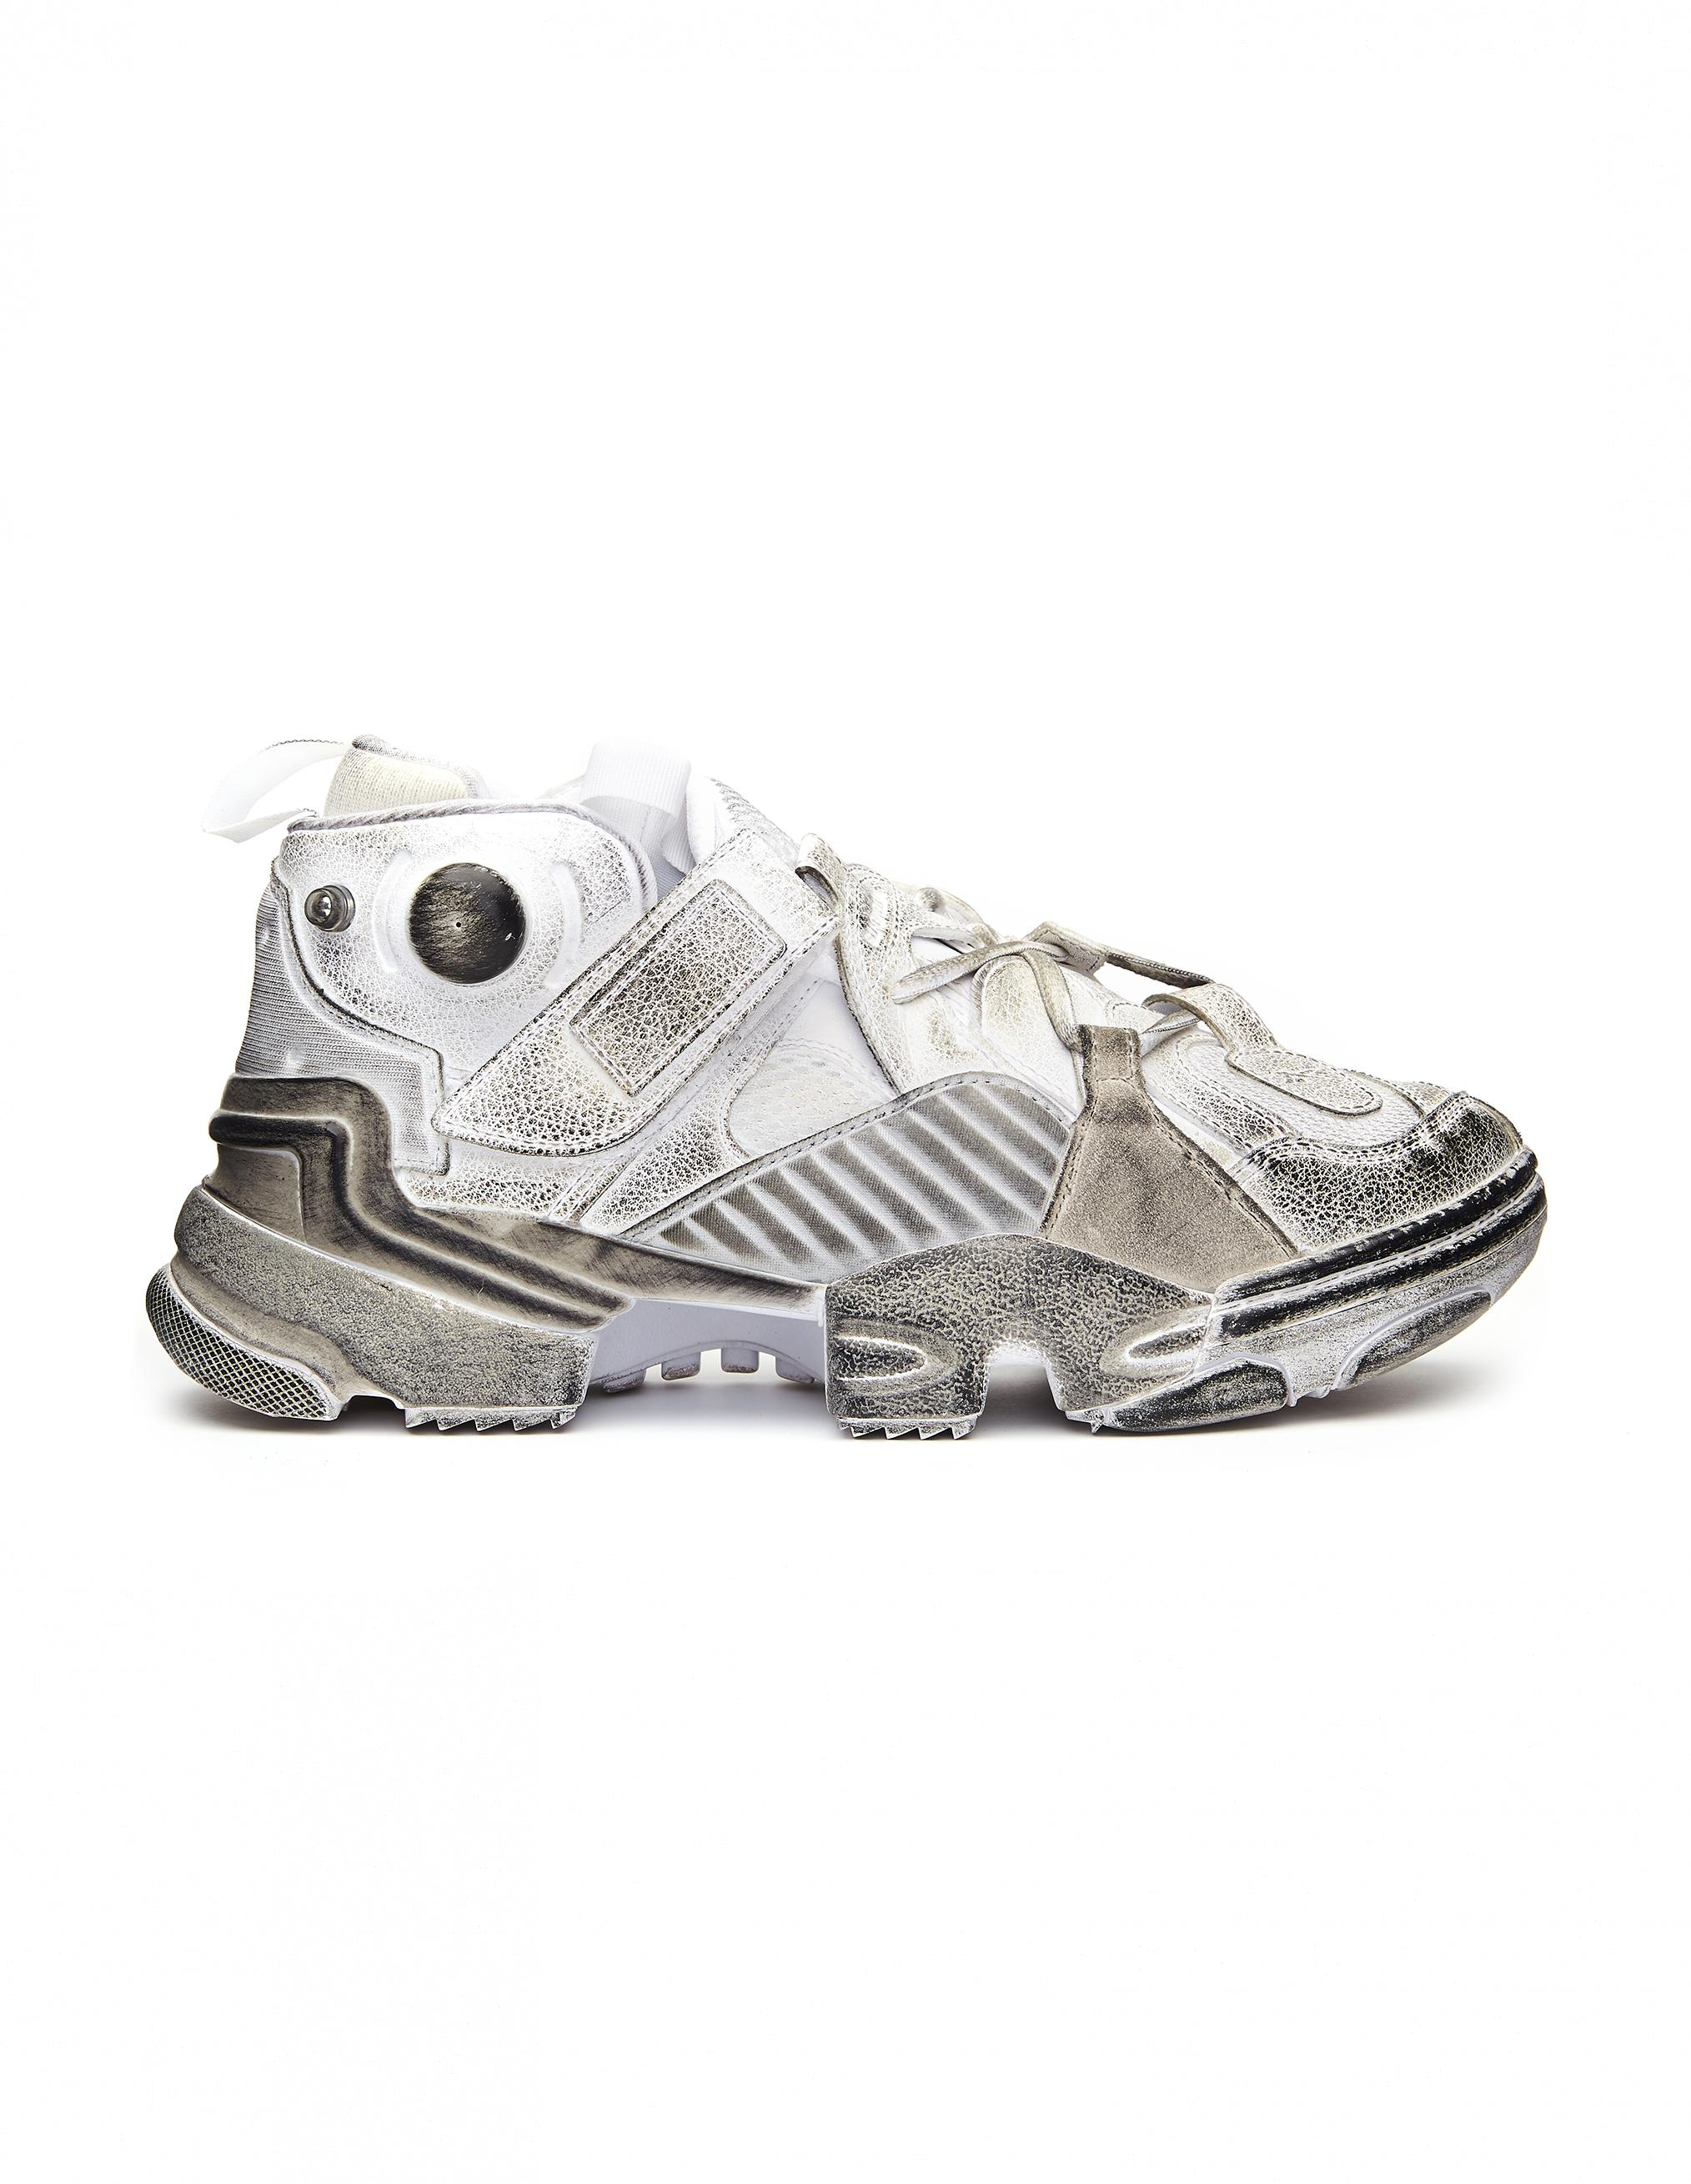 96cd6e5ed1b1 Lyst - Vetements Reebok Genetically Modified Pump Sneakers in White